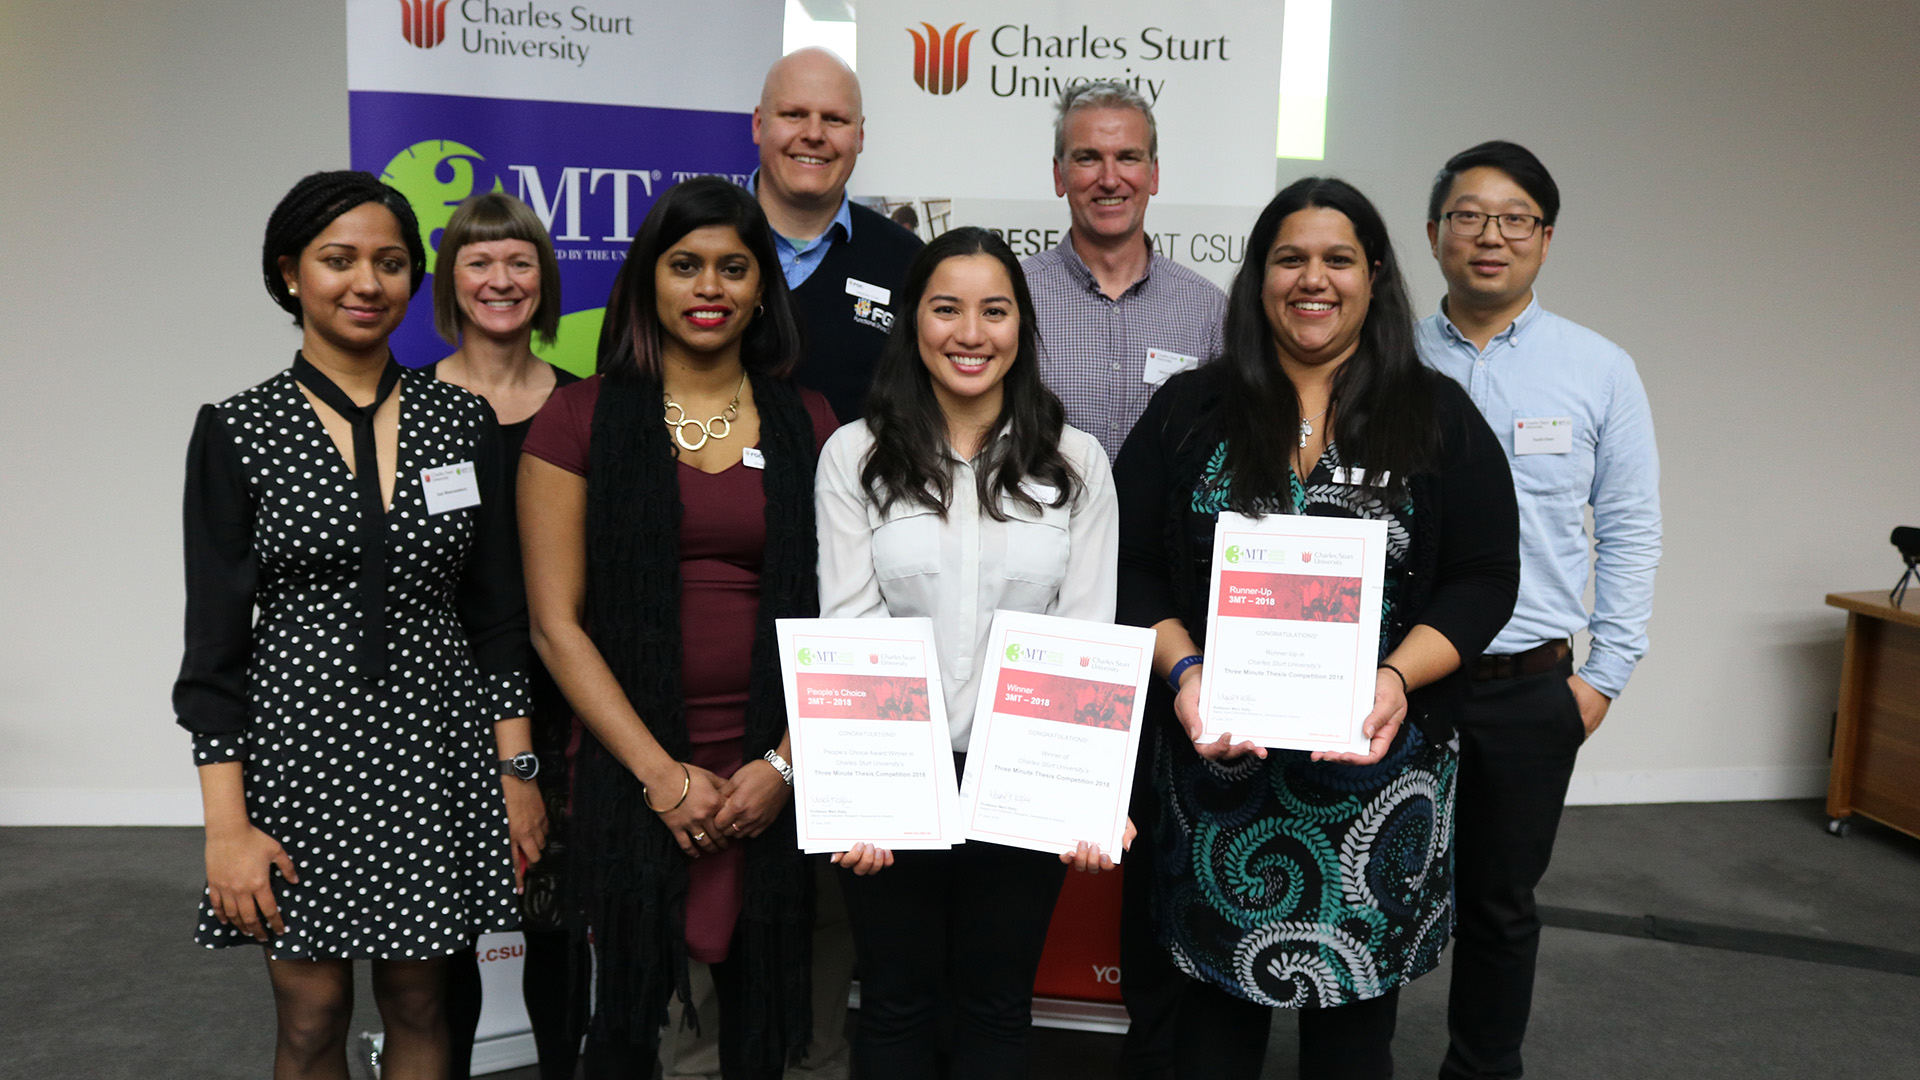 The finalists at the CSU 3MT